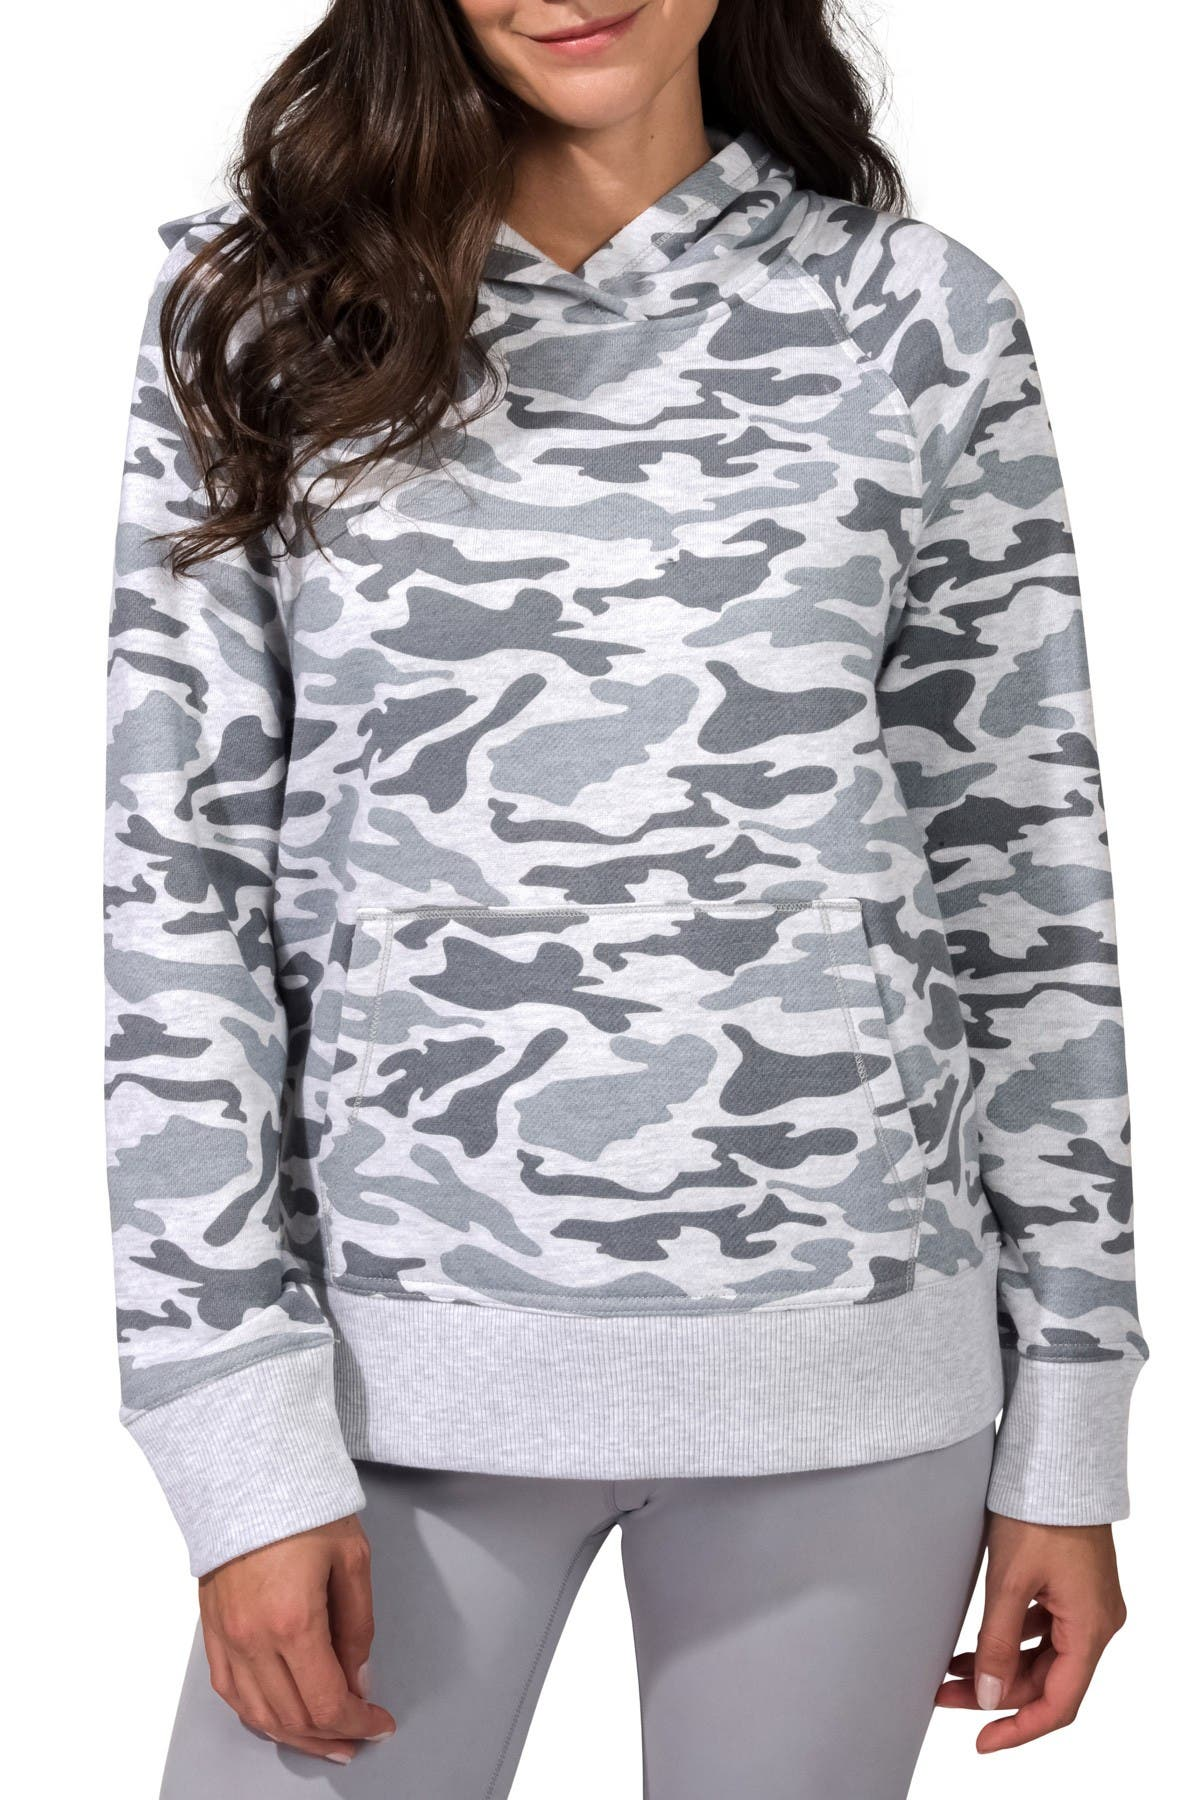 Image of 90 Degree By Reflex Patterned Hoodie